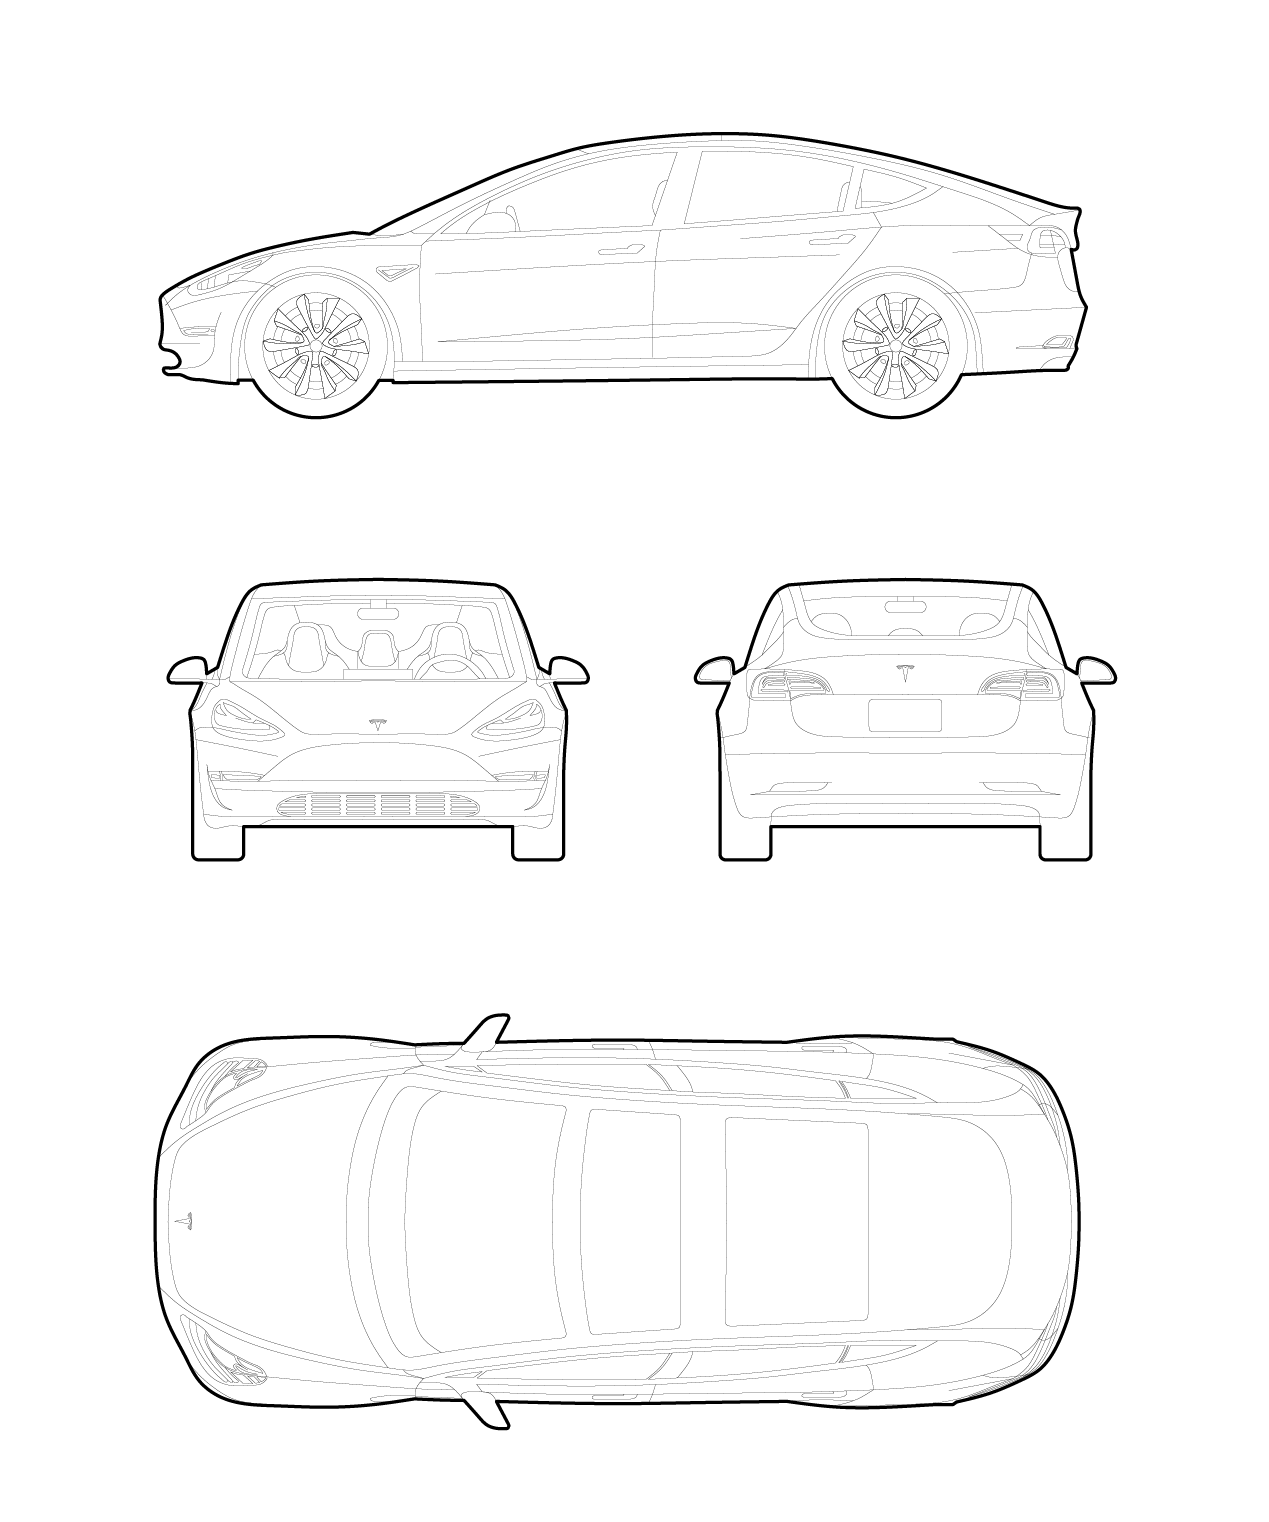 Drawing of a Tesla model 3 cad cars